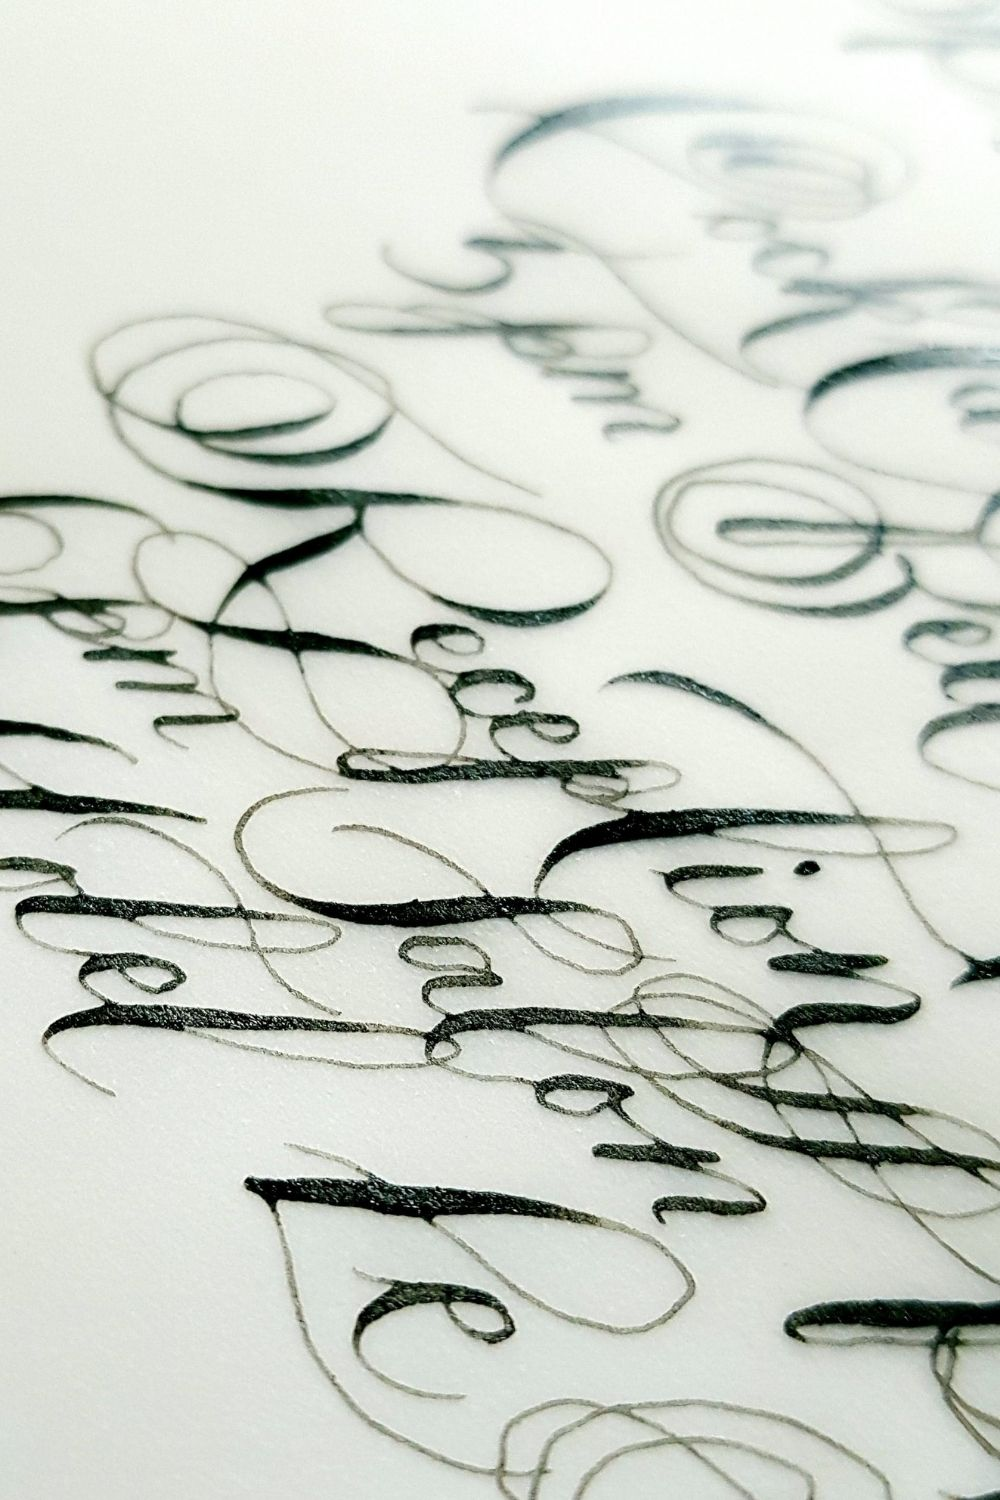 Classical hand applied calligraphy onto vellum for an elegant French wedding stationery suite